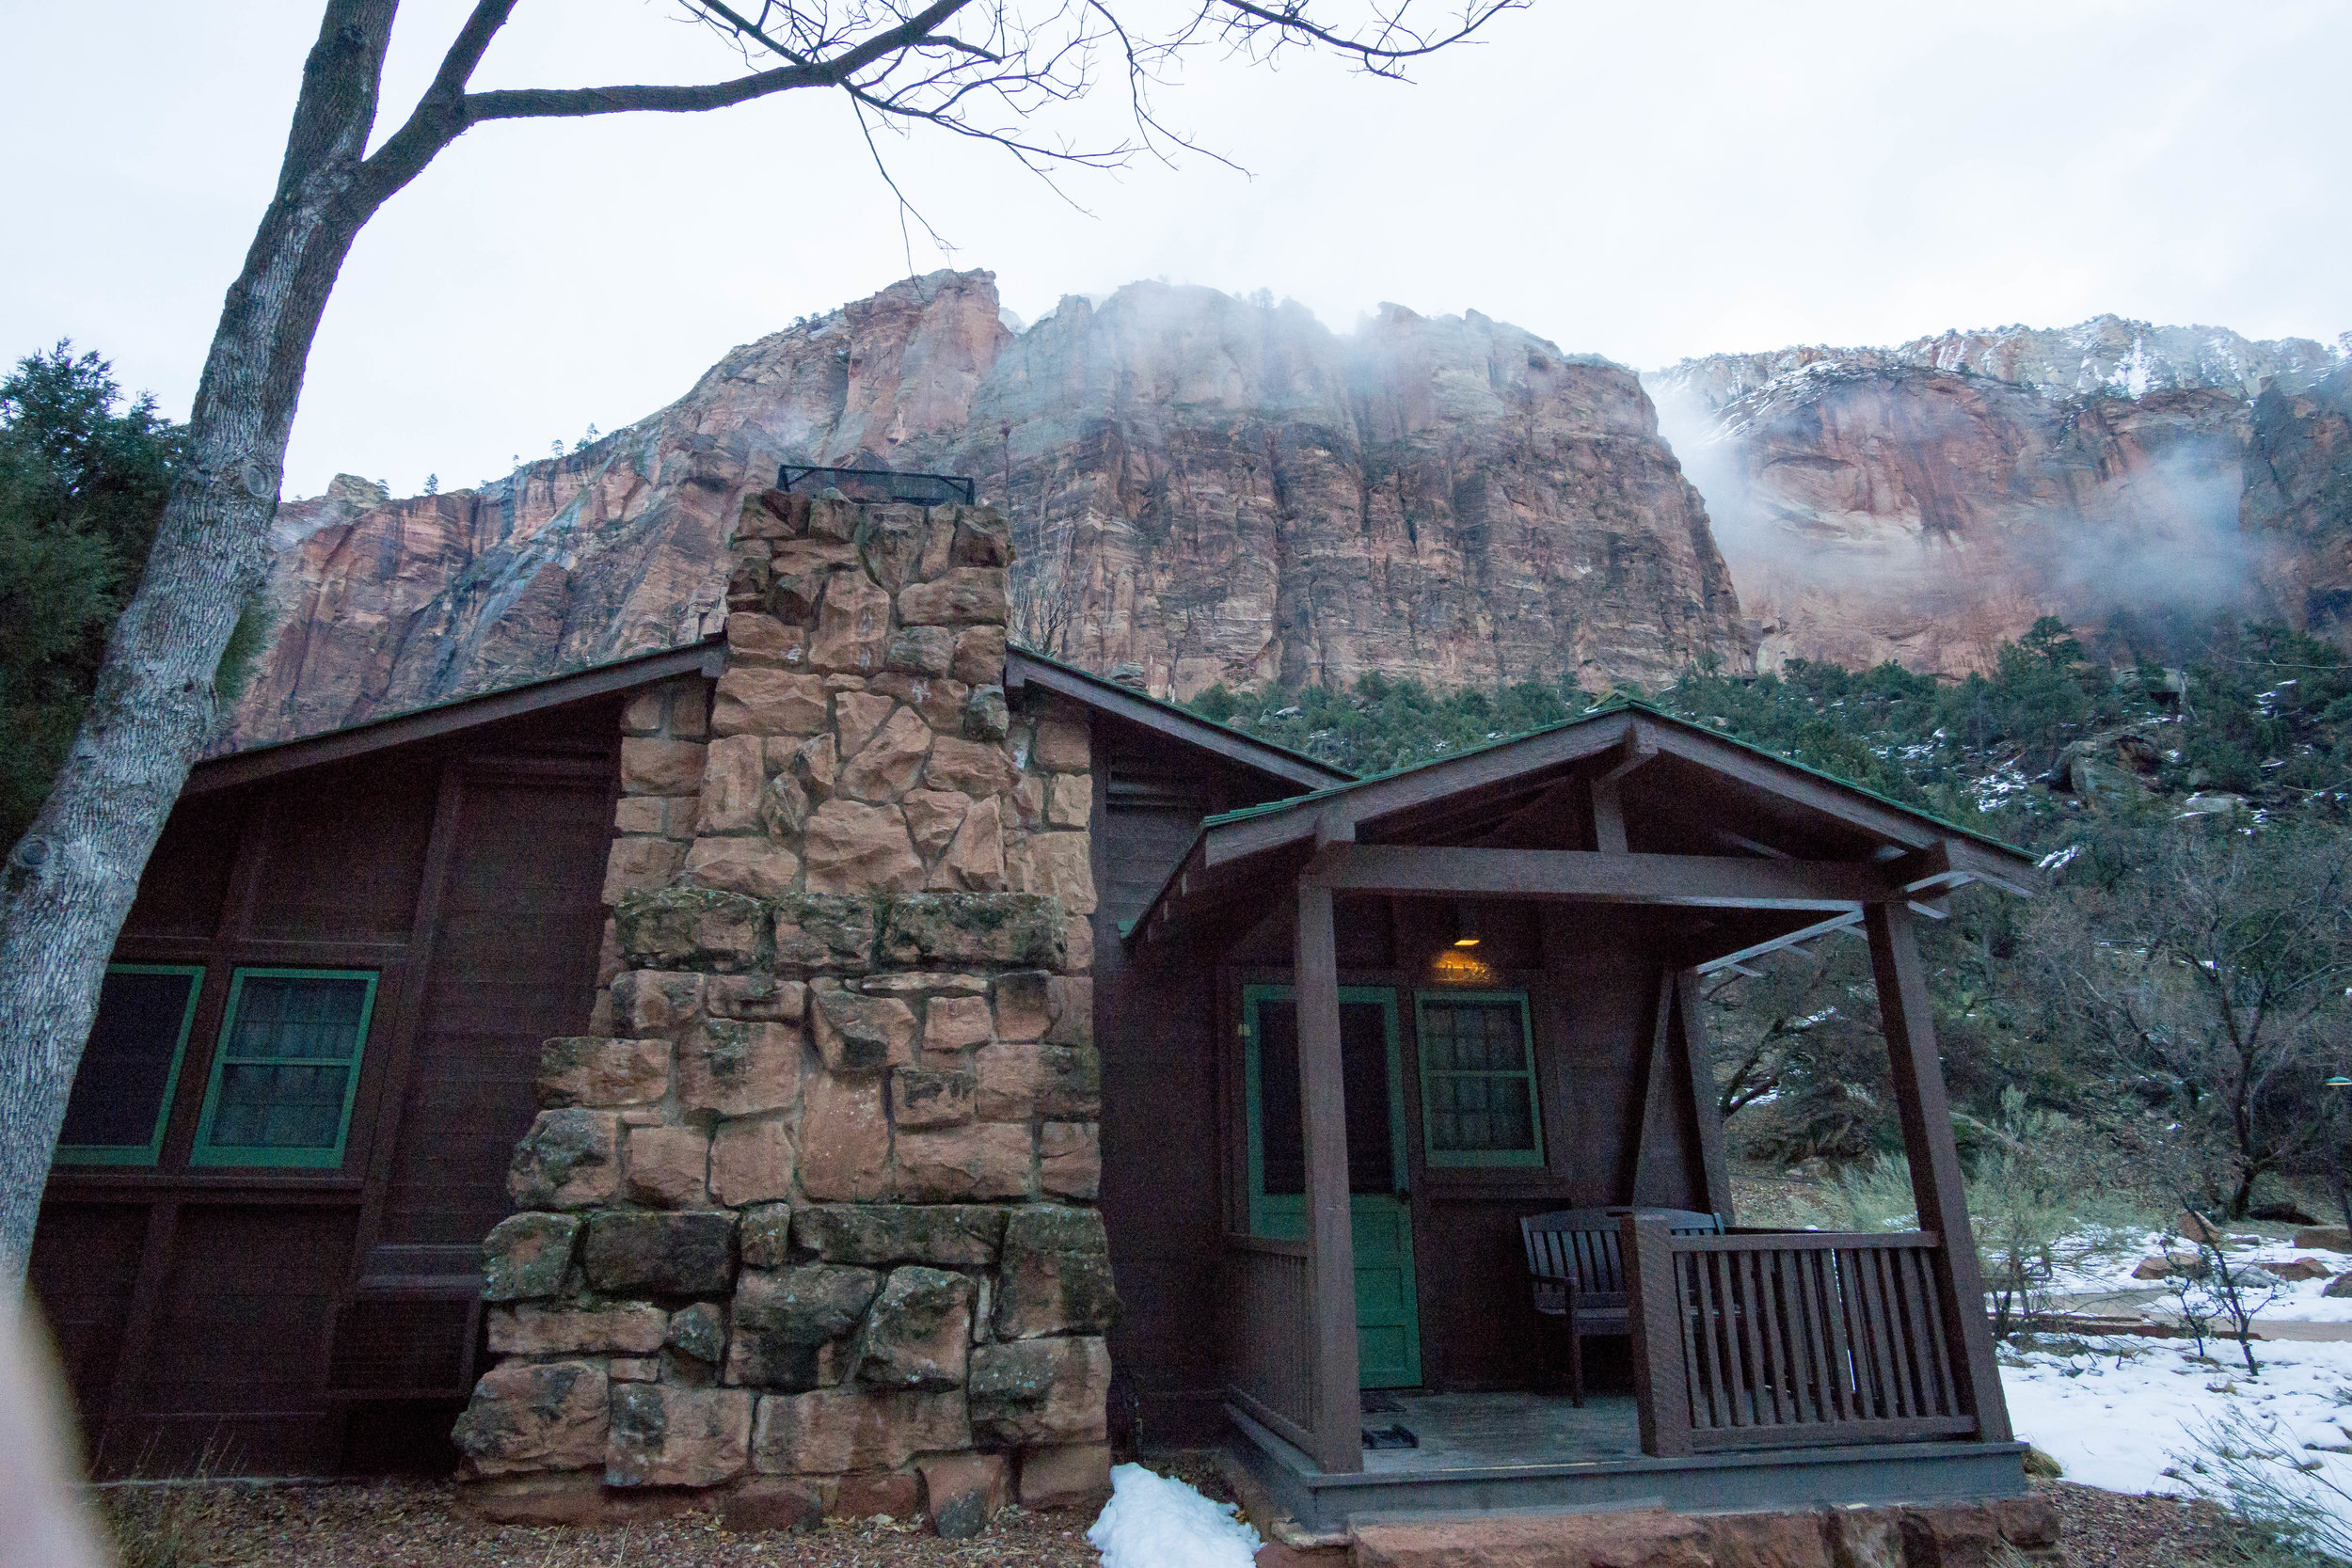 Our home away from home while on this trip. The cabin was super cozy and perfect to warm up in between trails.